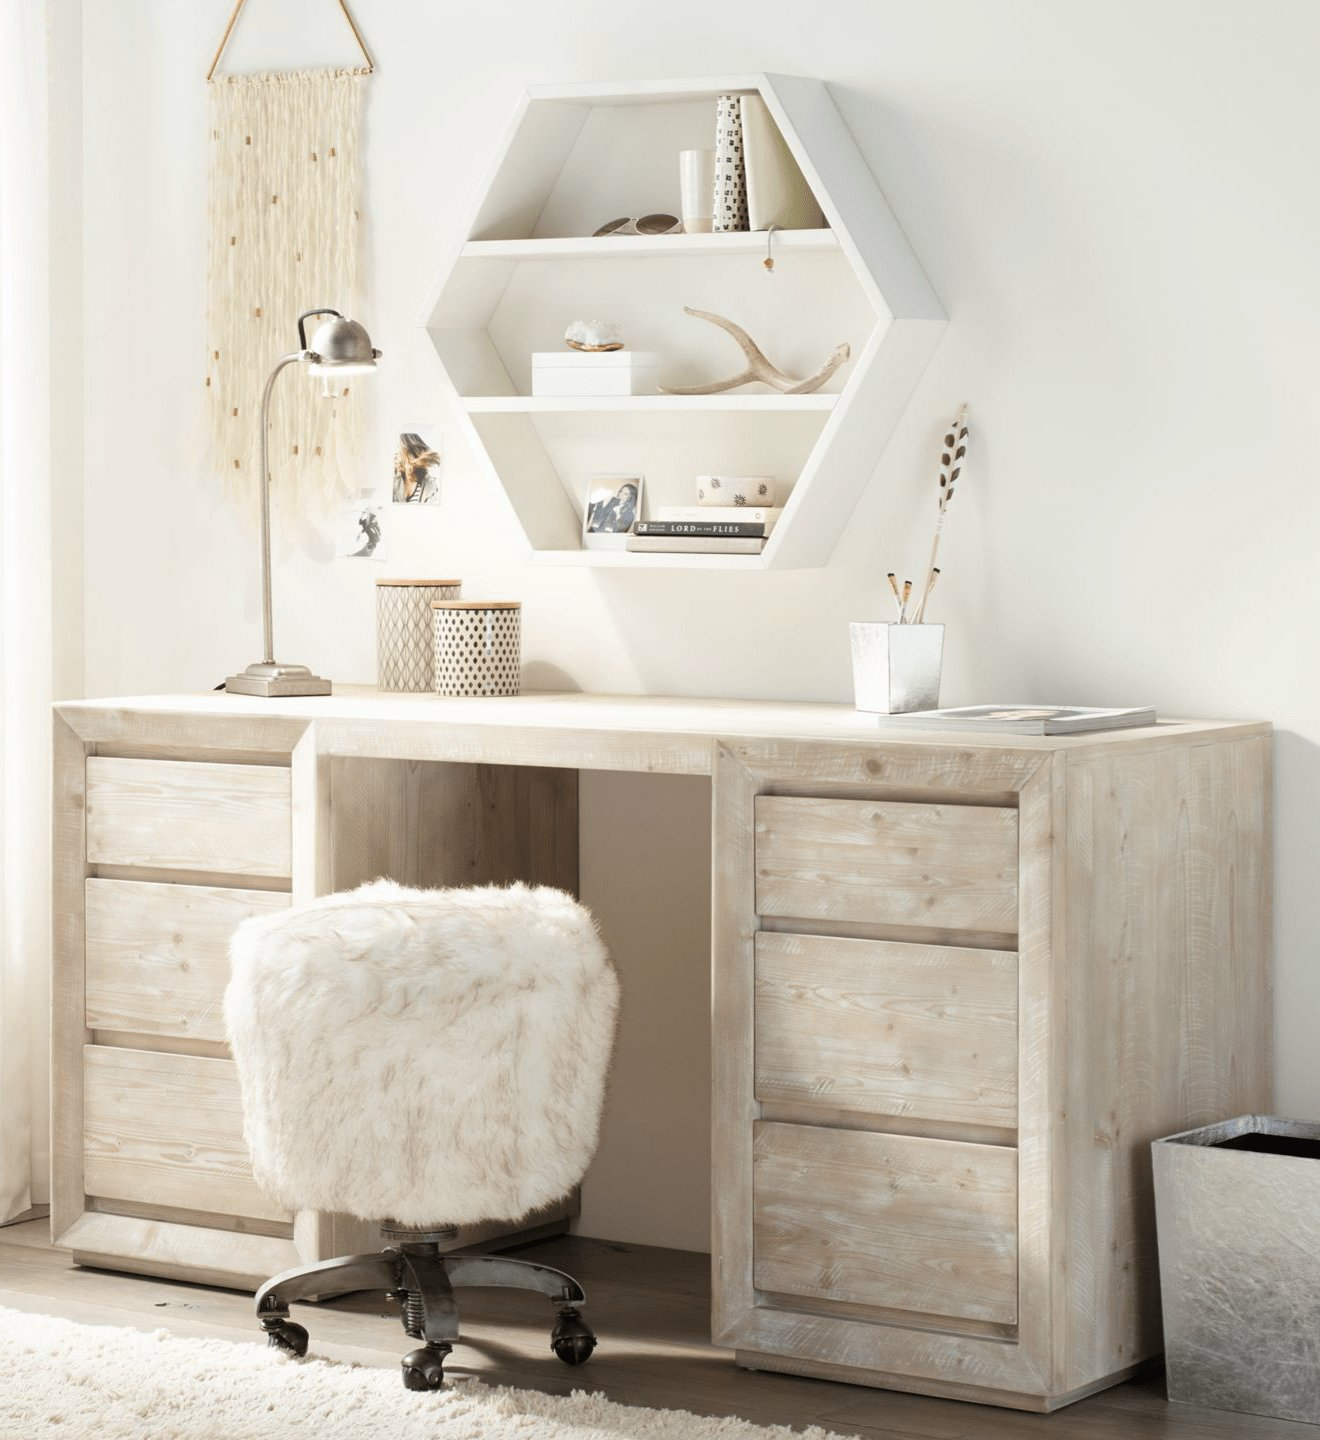 Best A Storage Desk Pairs With Geometric Shelving To Create A With Pictures